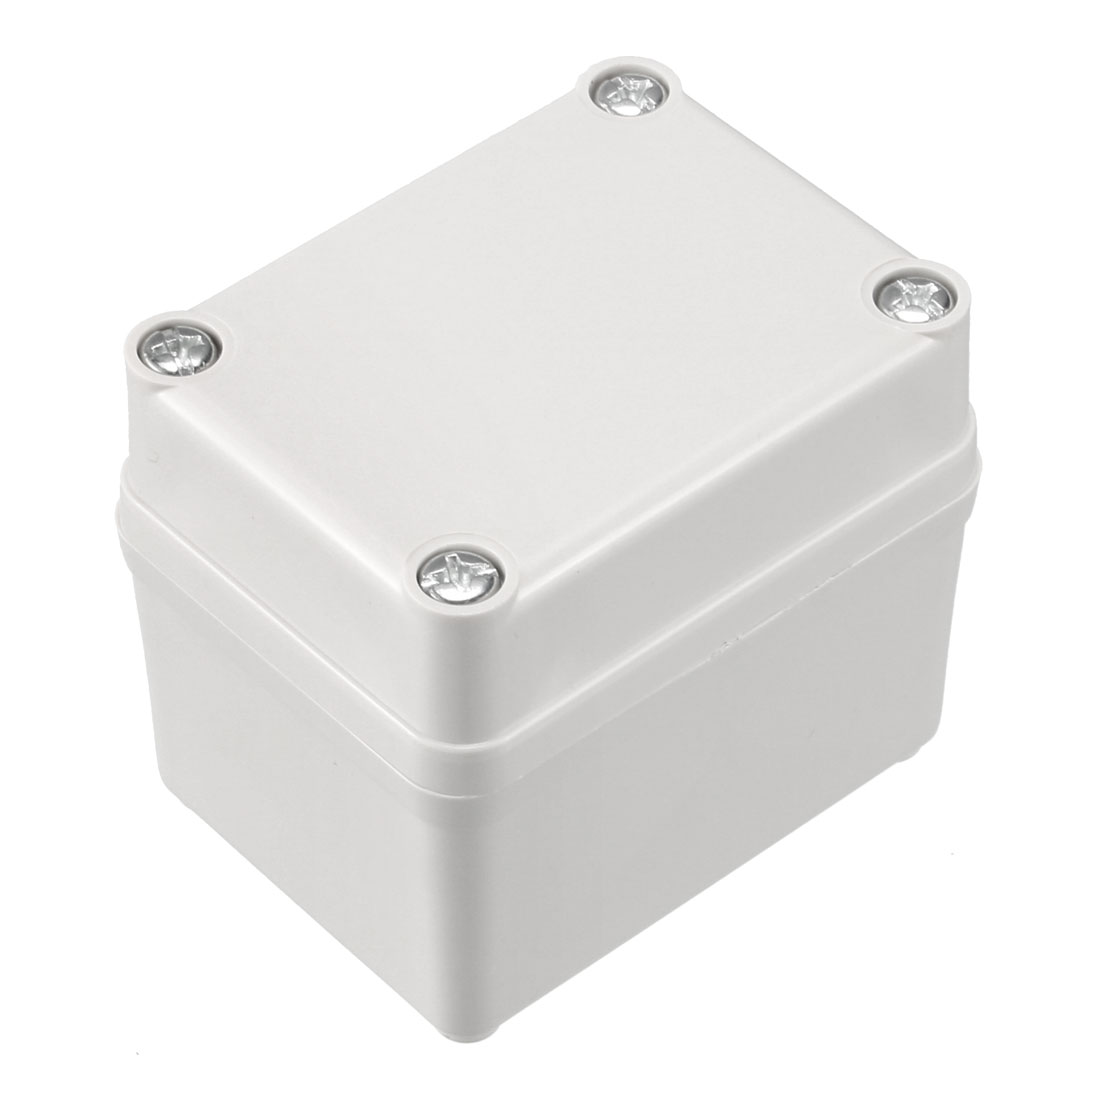 65 x 50 x 55mm Electronic ABS Plastic DIY Junction Box Enclosure Case Grey